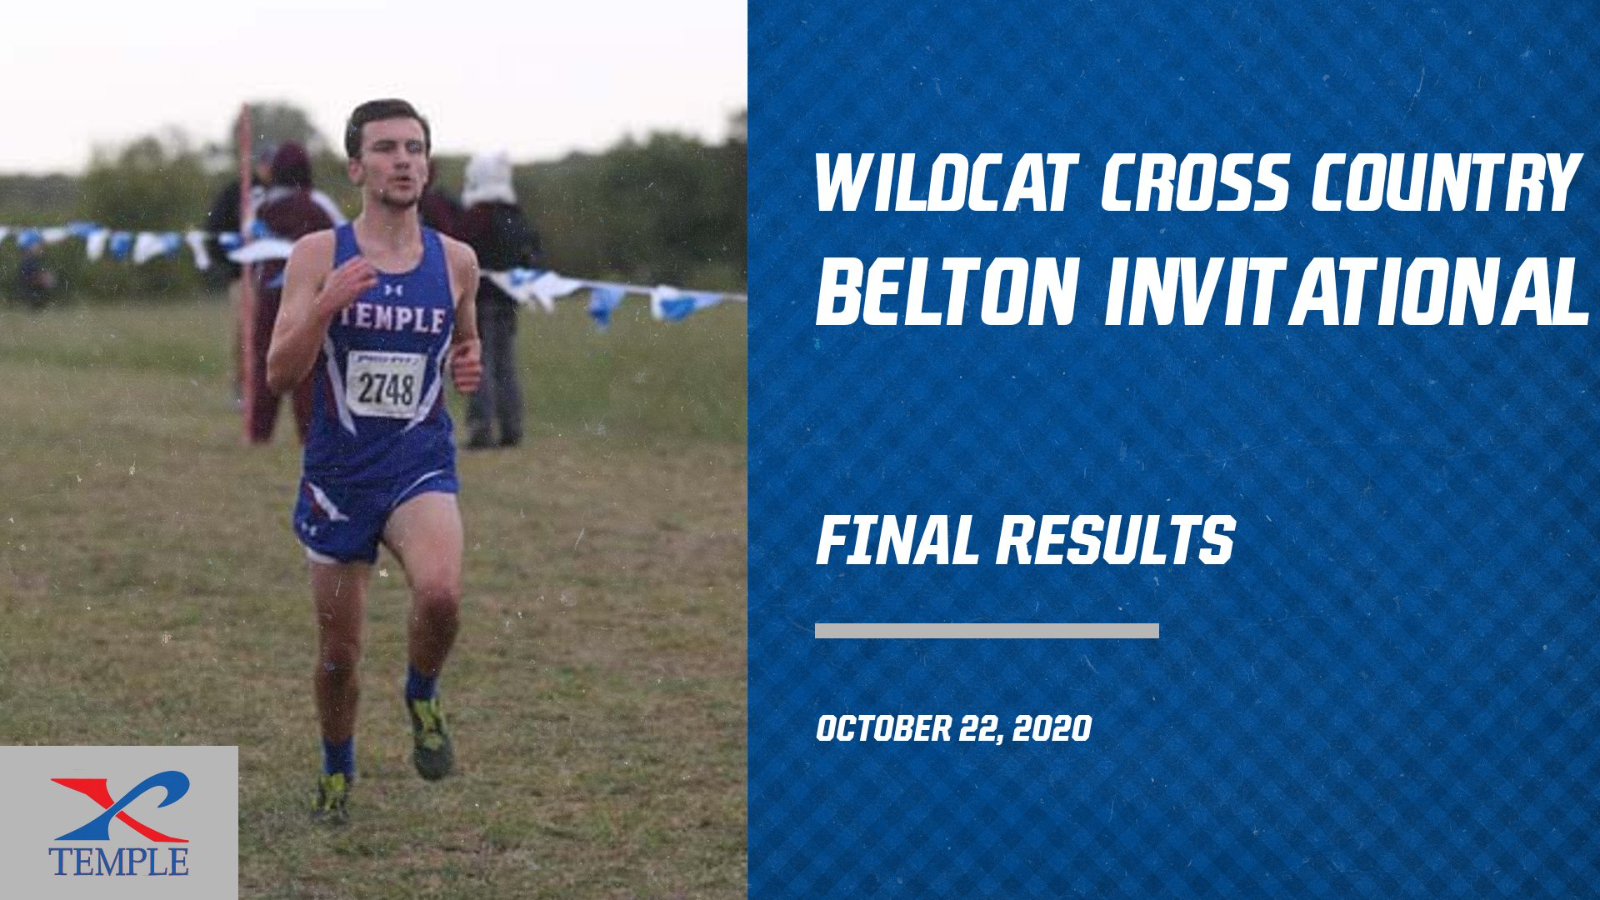 Wildcat Cross Country takes 4th at the Belton Invitational